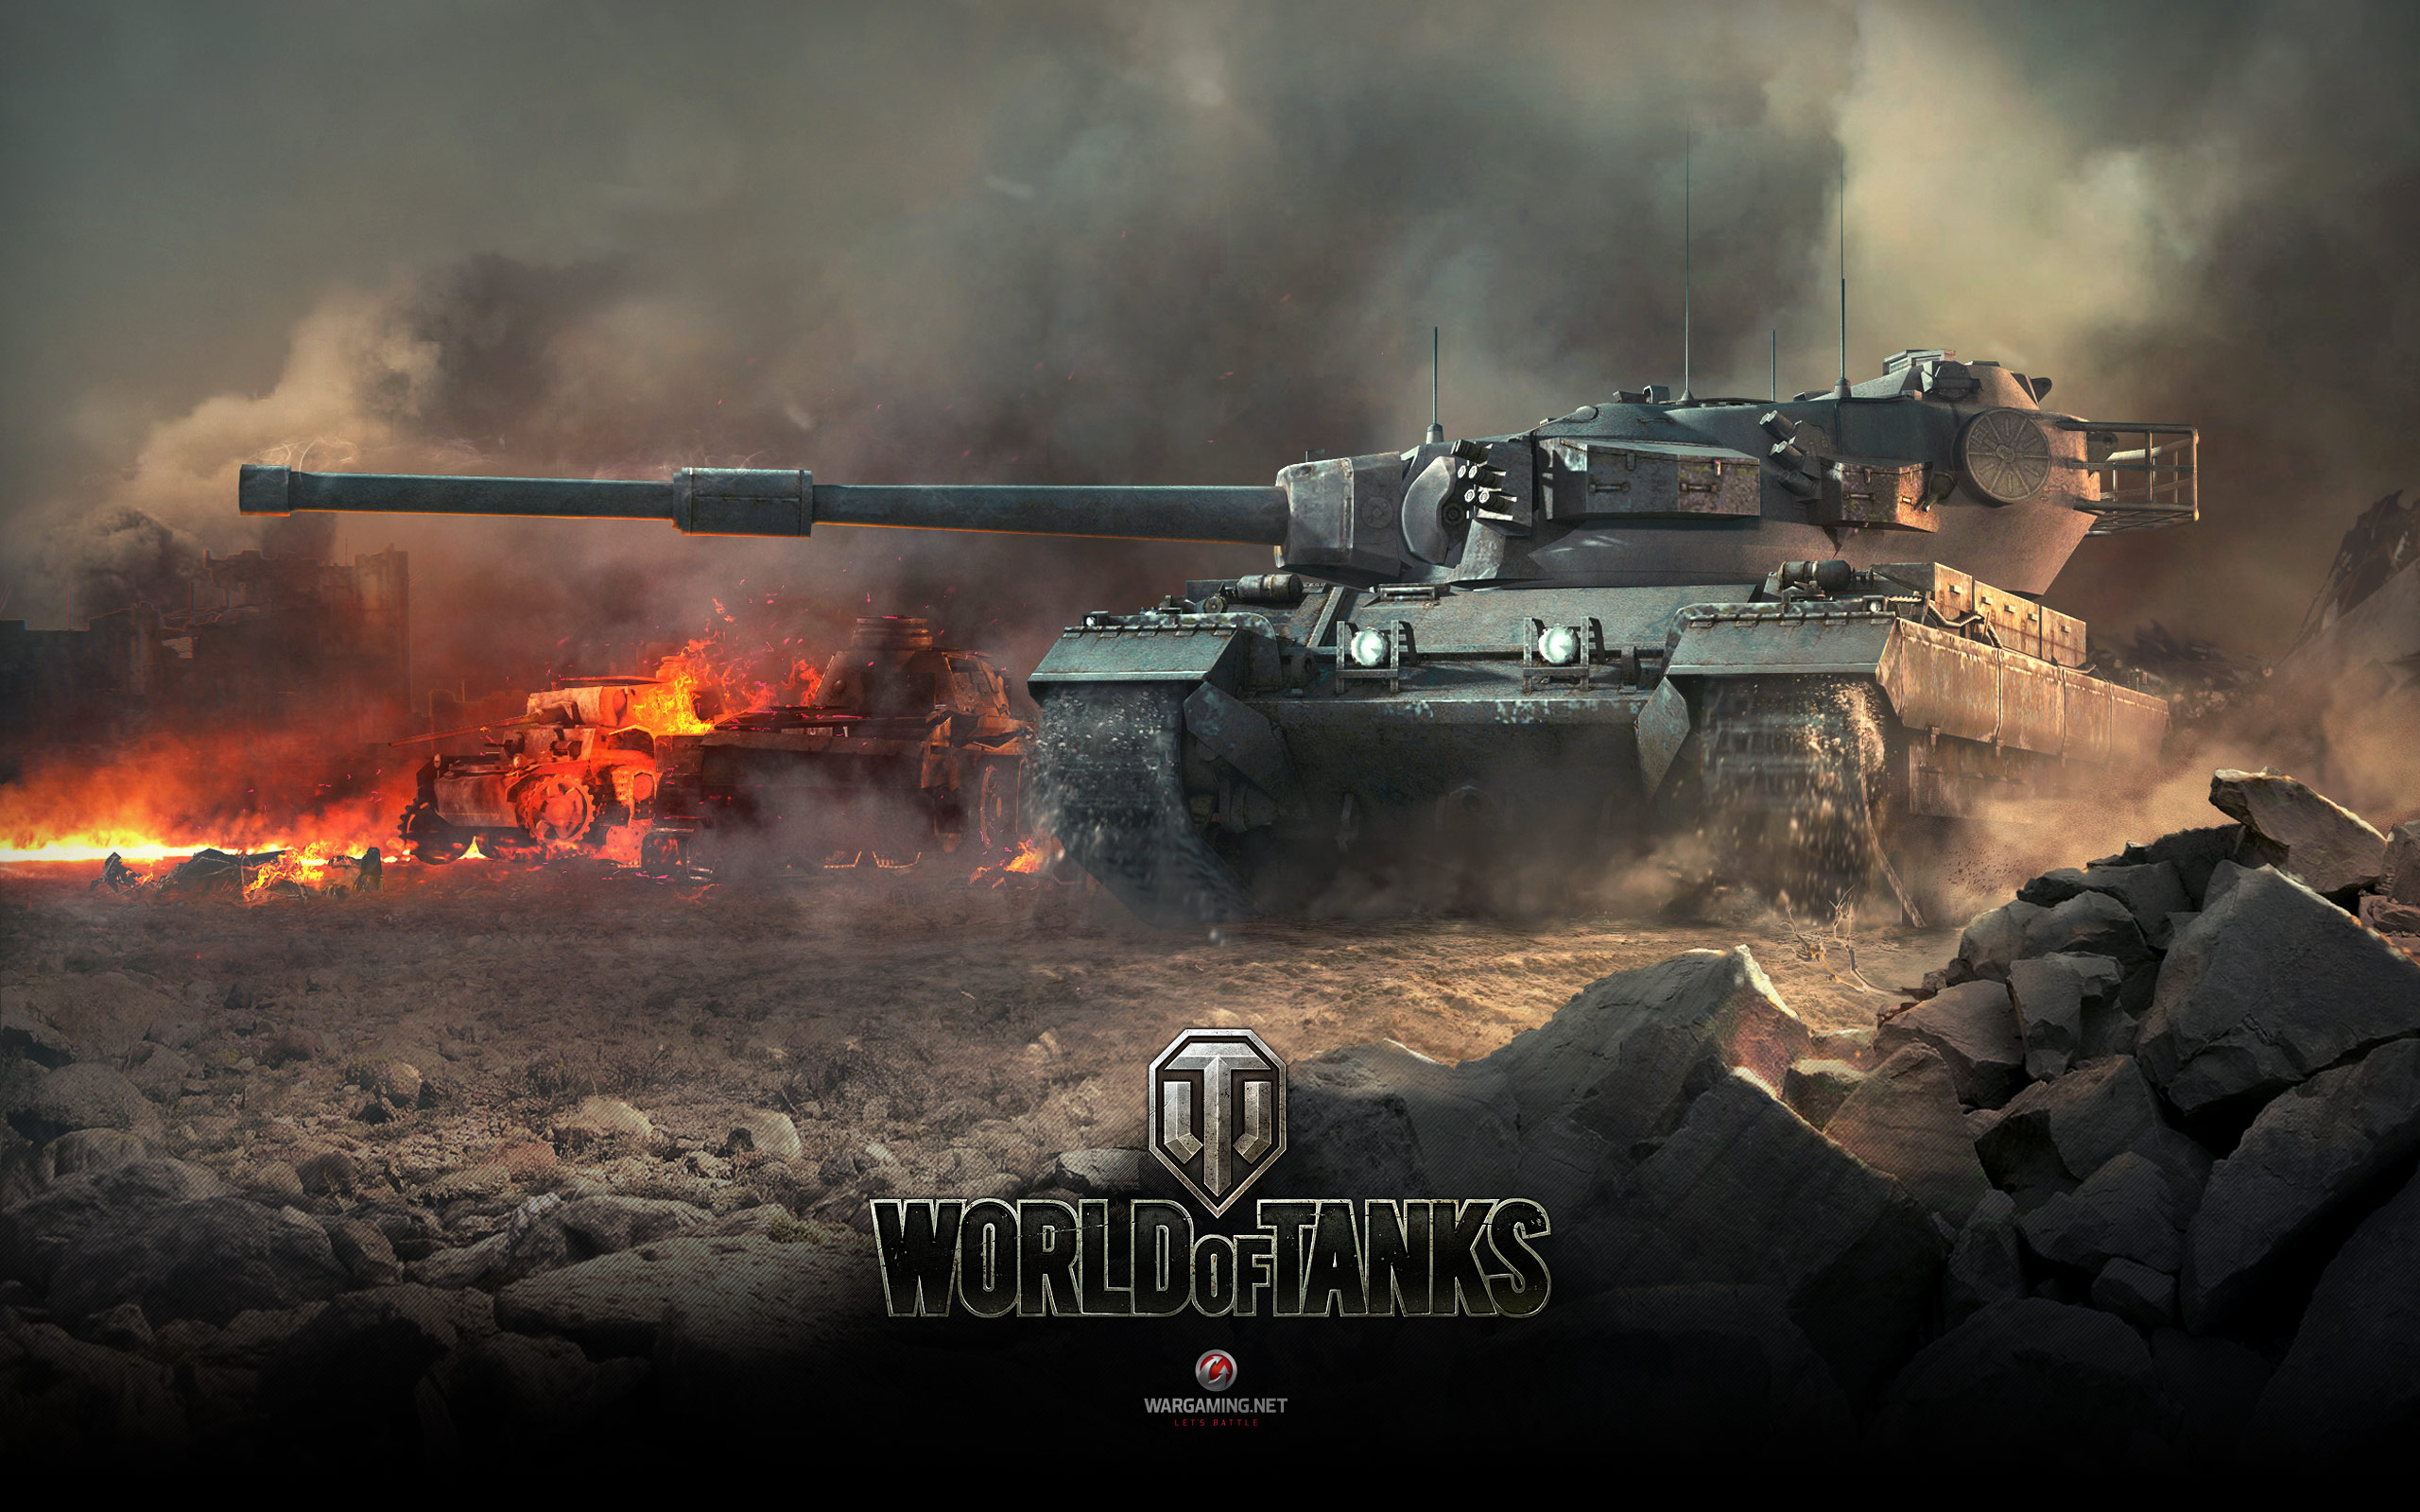 World Of Tanks Wallpaper HD #6921230